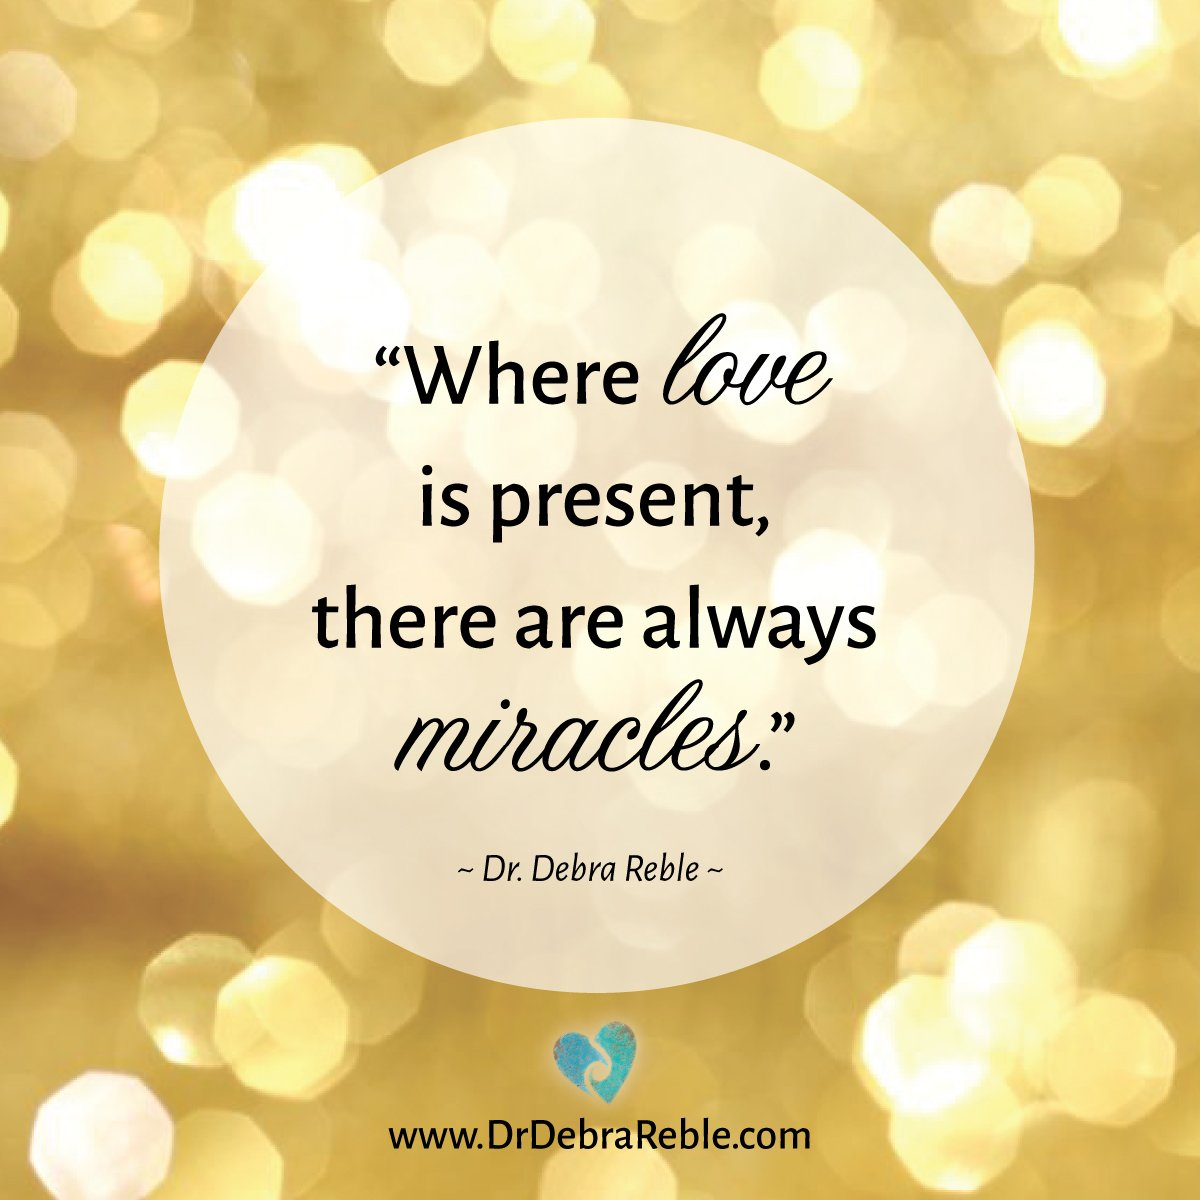 """""""Where LOVE is present there are always #MIRACLES."""" #BeingLove #SharetheLove https://t.co/I80J4bvrwq"""